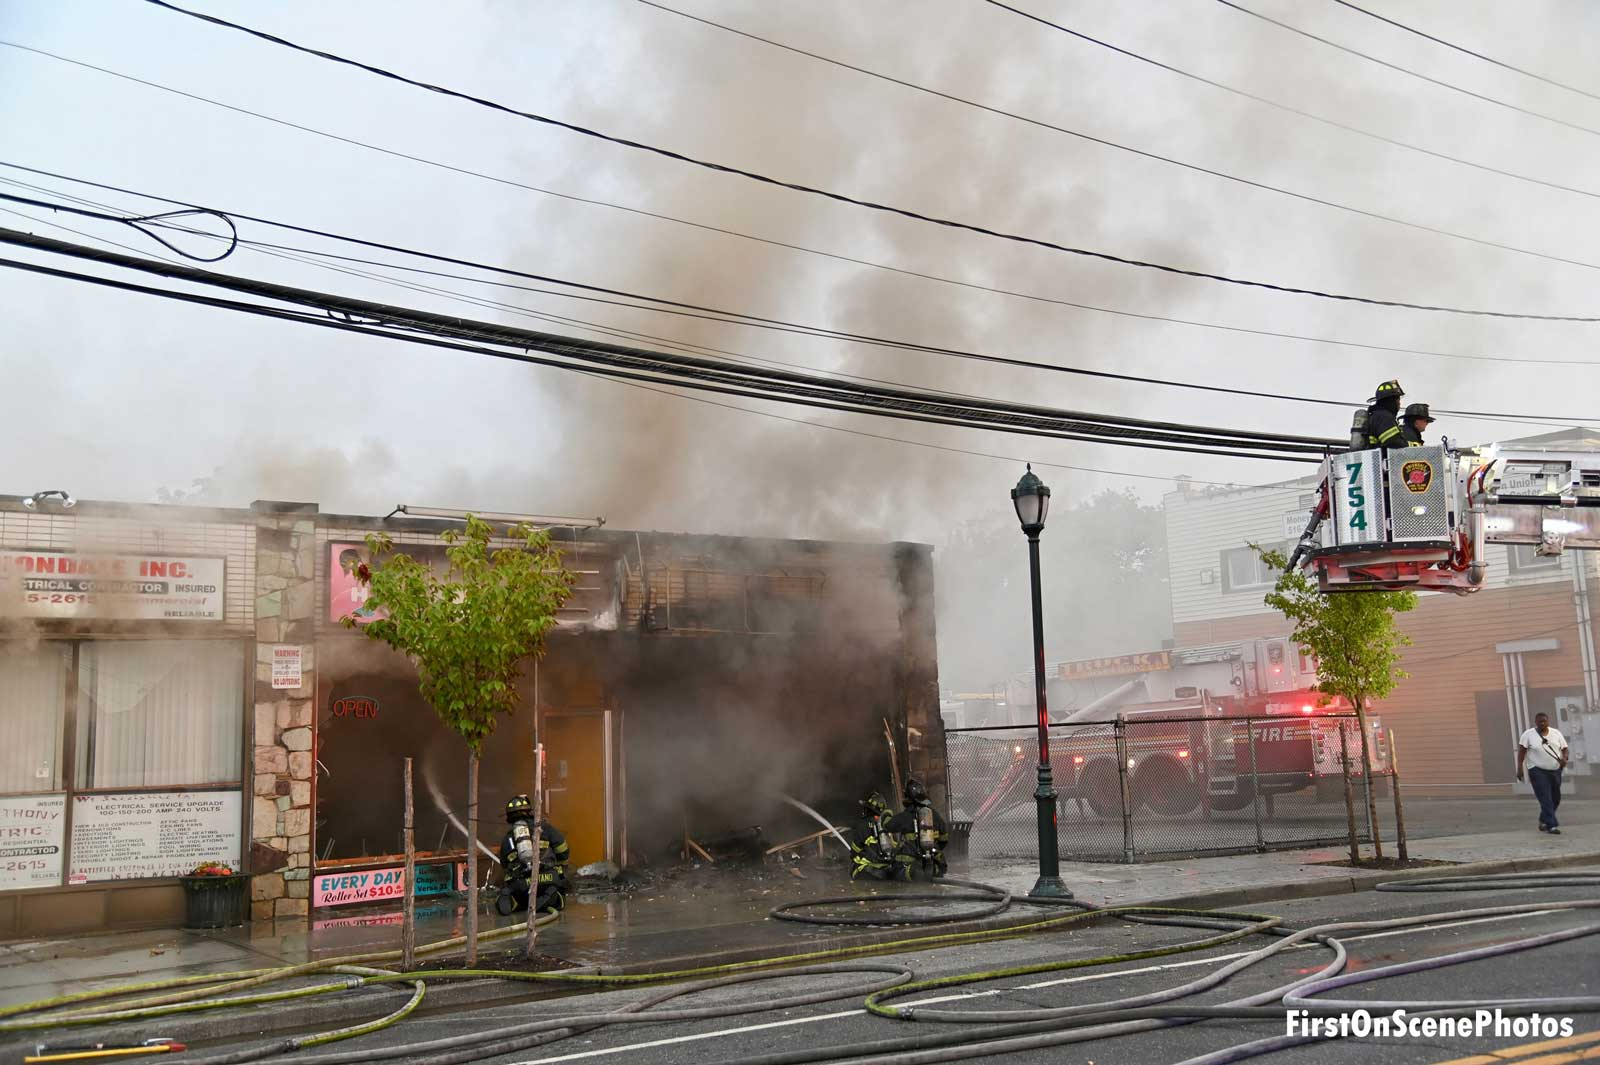 Smoke showing from a storefront